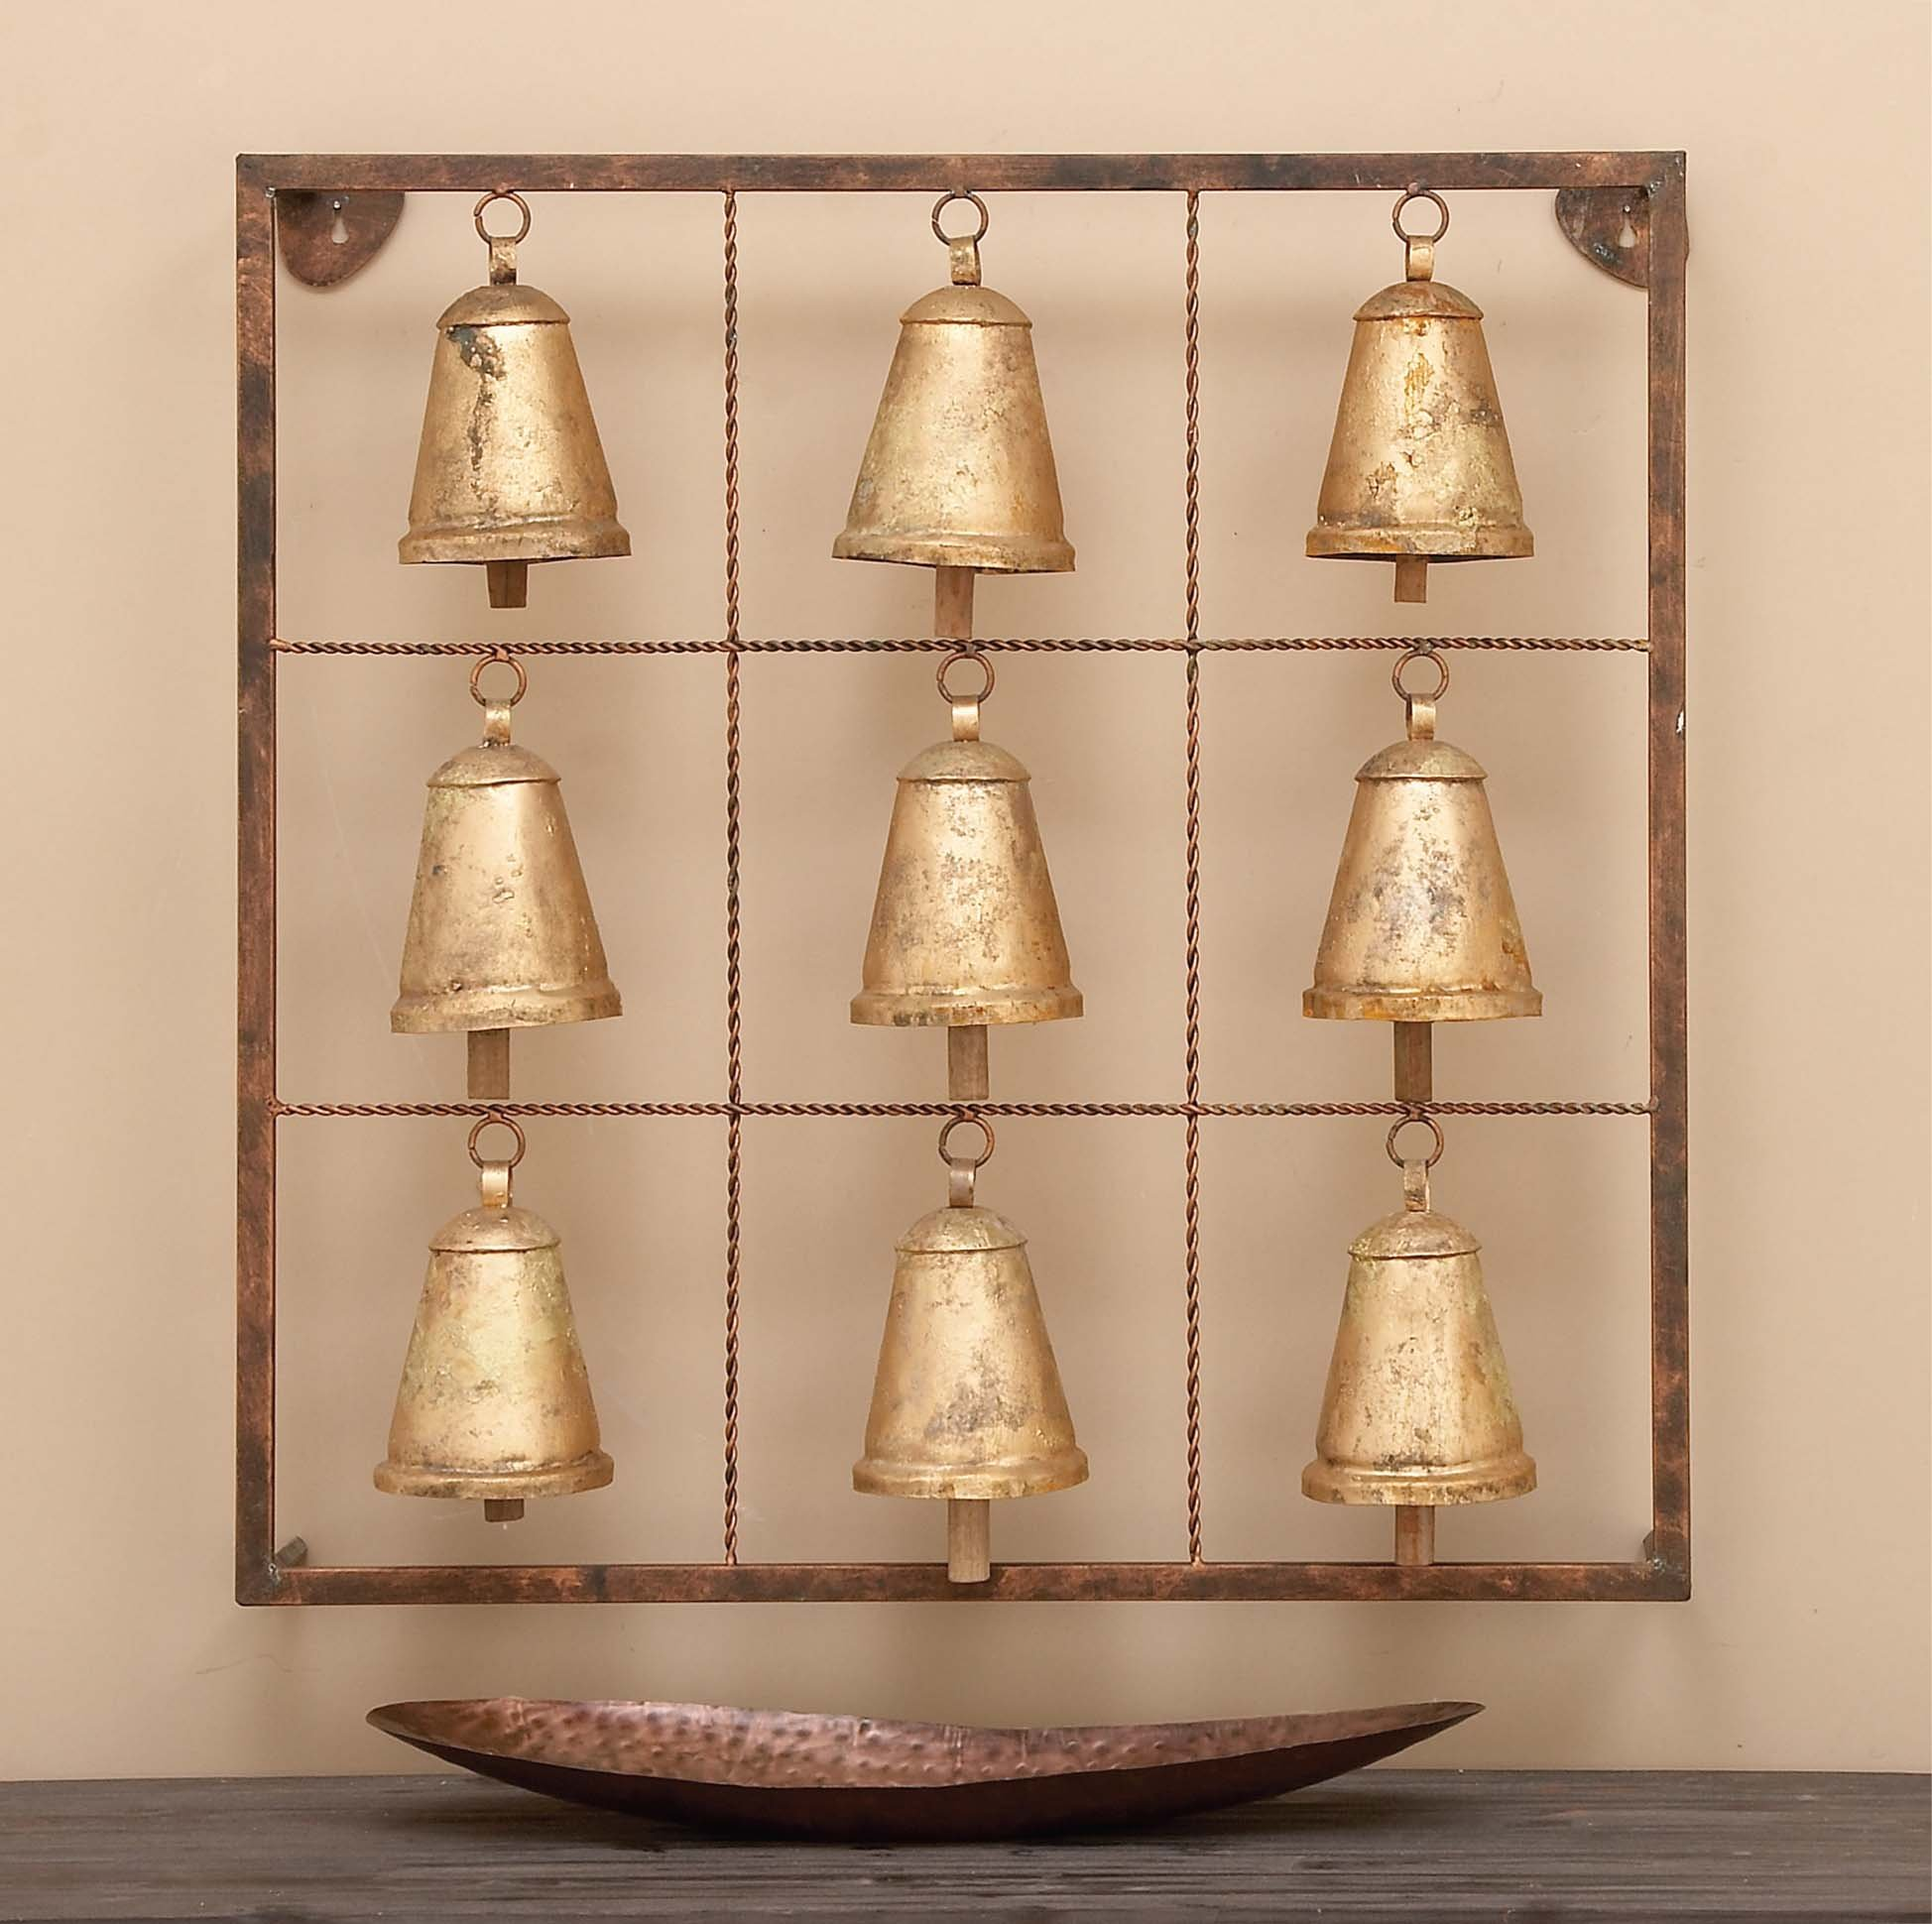 Deco 79 Benzara 26723 Metal Square Wall Plaque with 9 Bells and Rustic Look, 32'' x 32'', Distressed Gold Finish by Deco 79